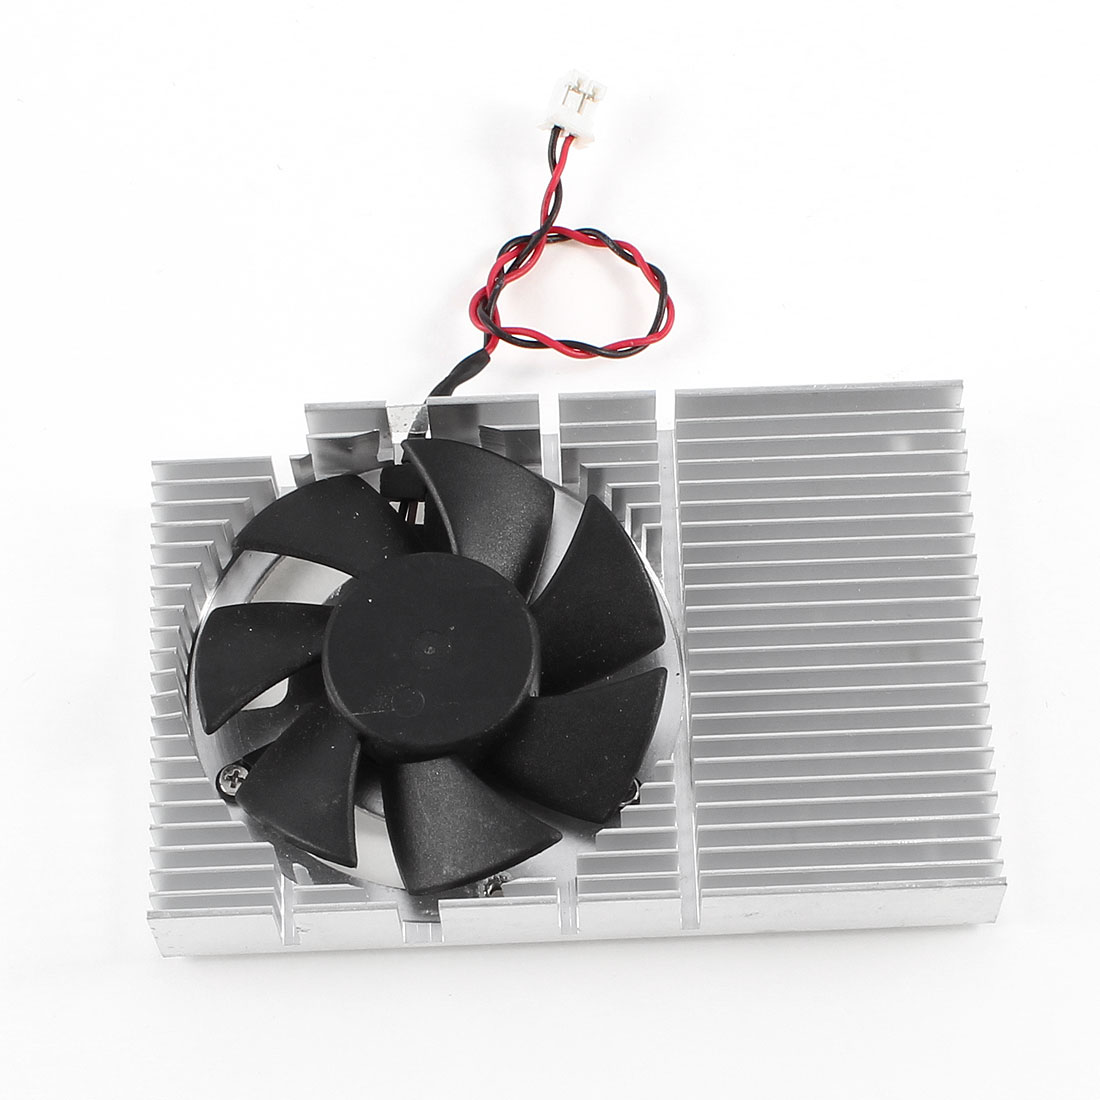 DC 12V 0.05A Silver Tone Plastic Shell Cooling Fan 46mm x 46mm